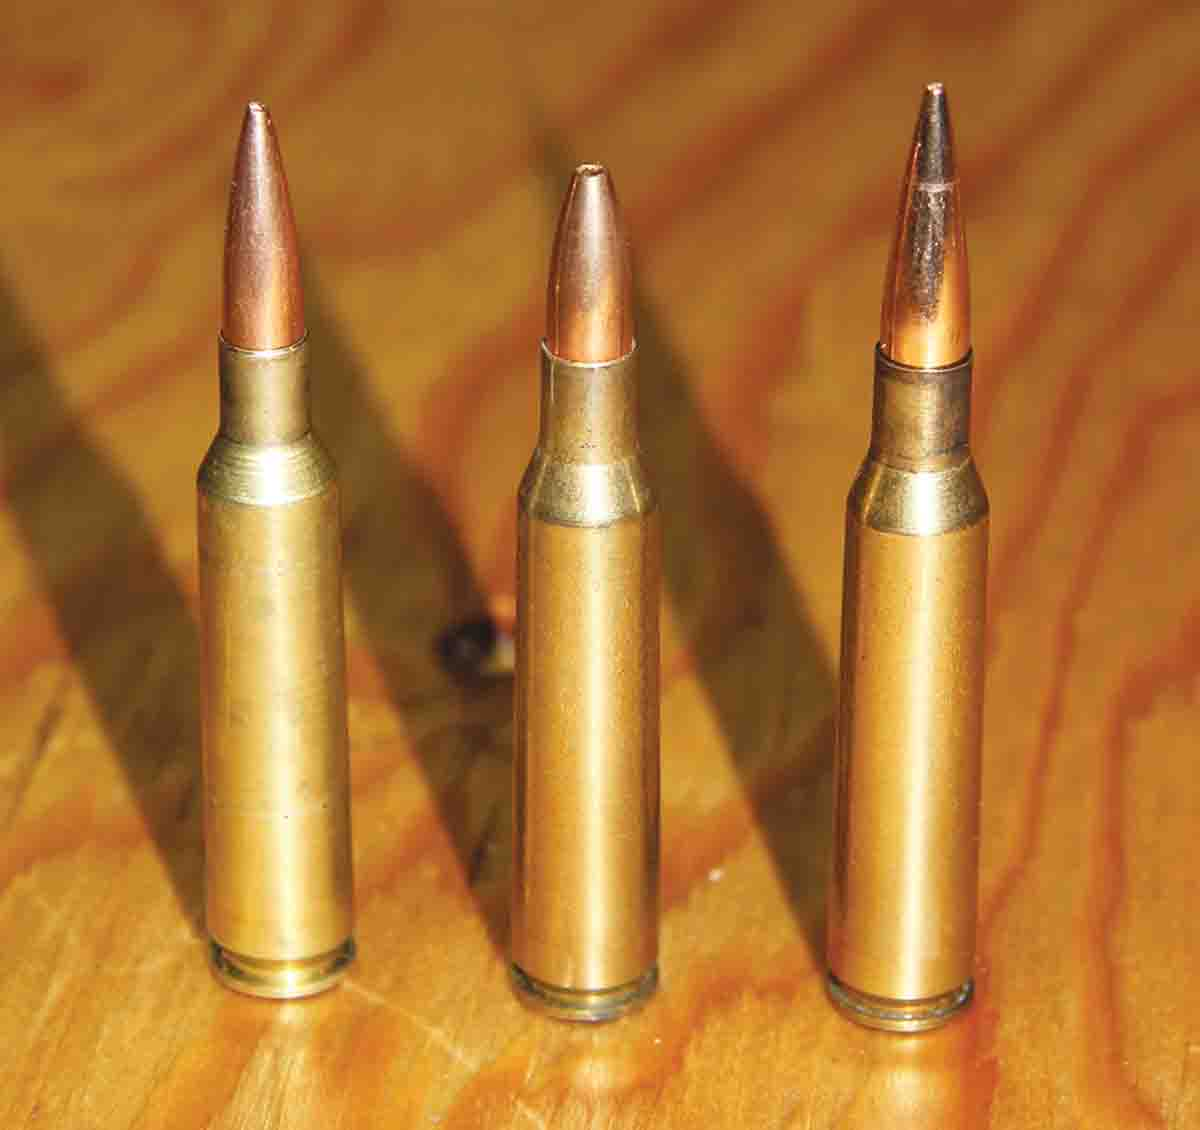 Brass for the 6.5x57mm Mauser is easily made from 6mm Remington, (left) and .257 Roberts (middle). The 6.5x57mm (right) is shown for comparison.